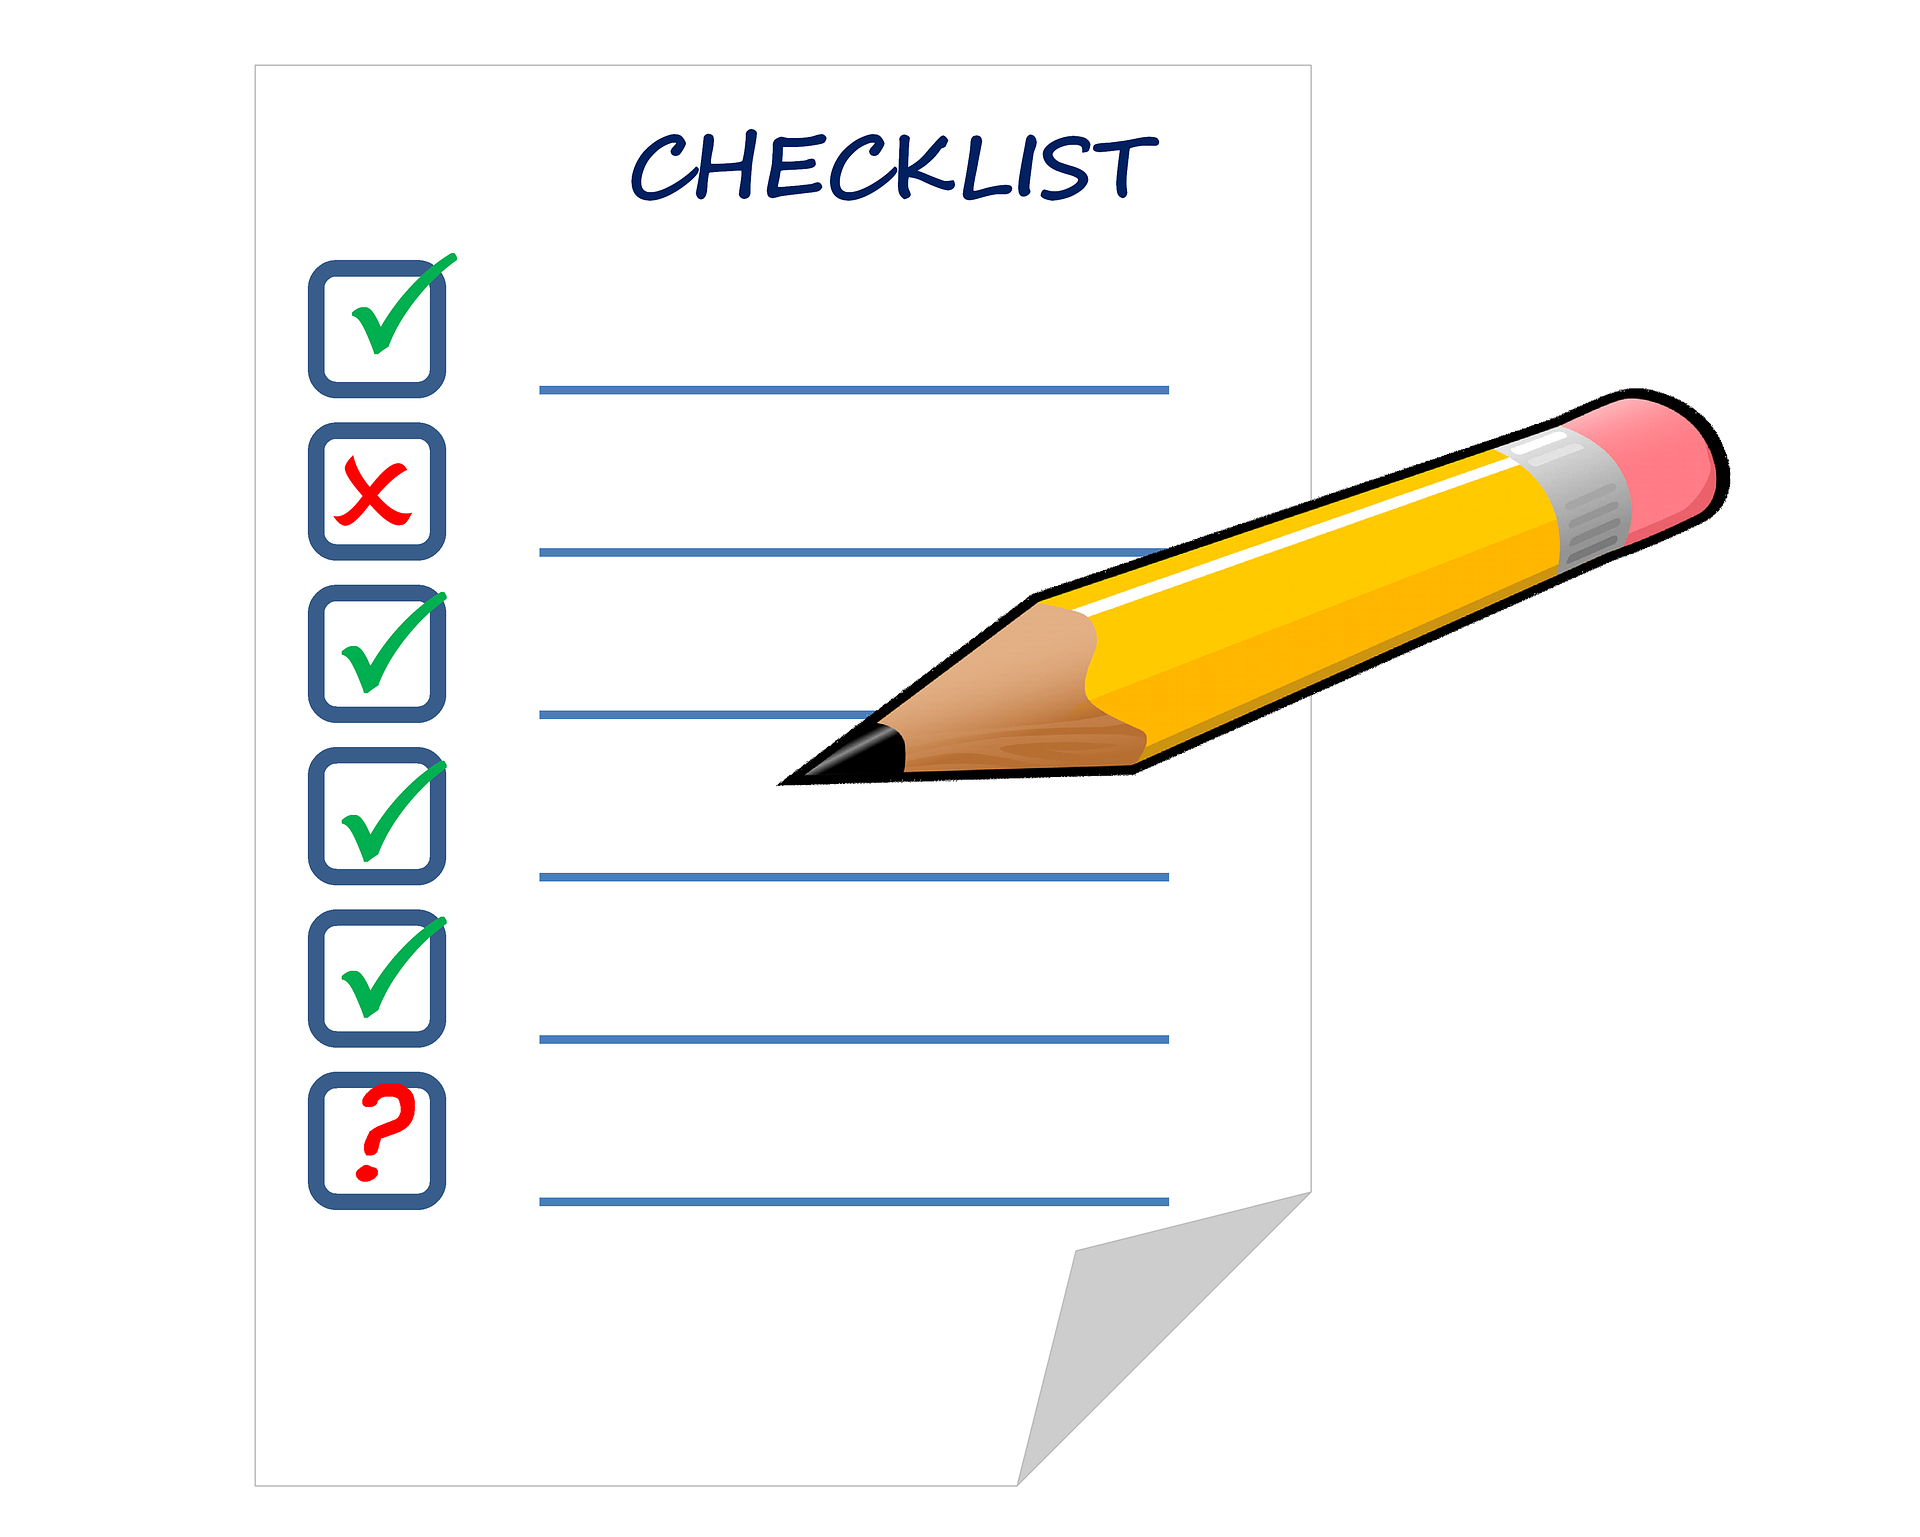 checklist-911841_1920.png